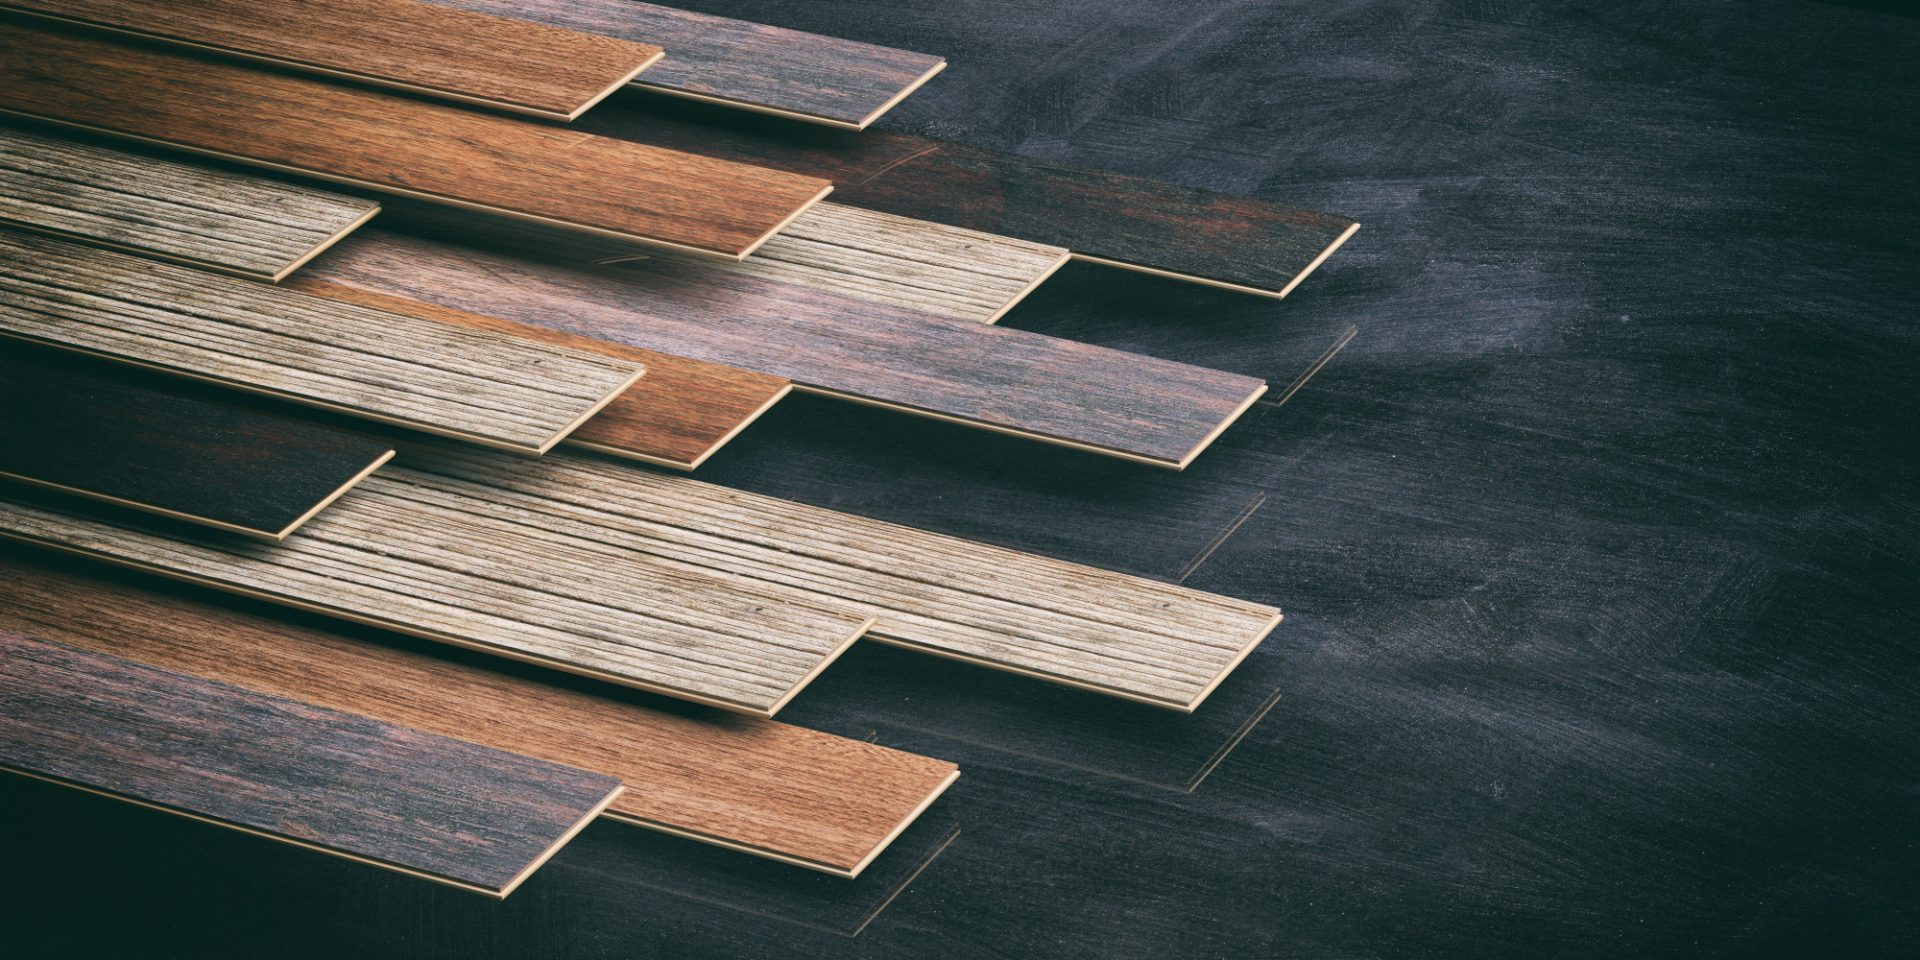 hardwood flooring has several facts you should know about